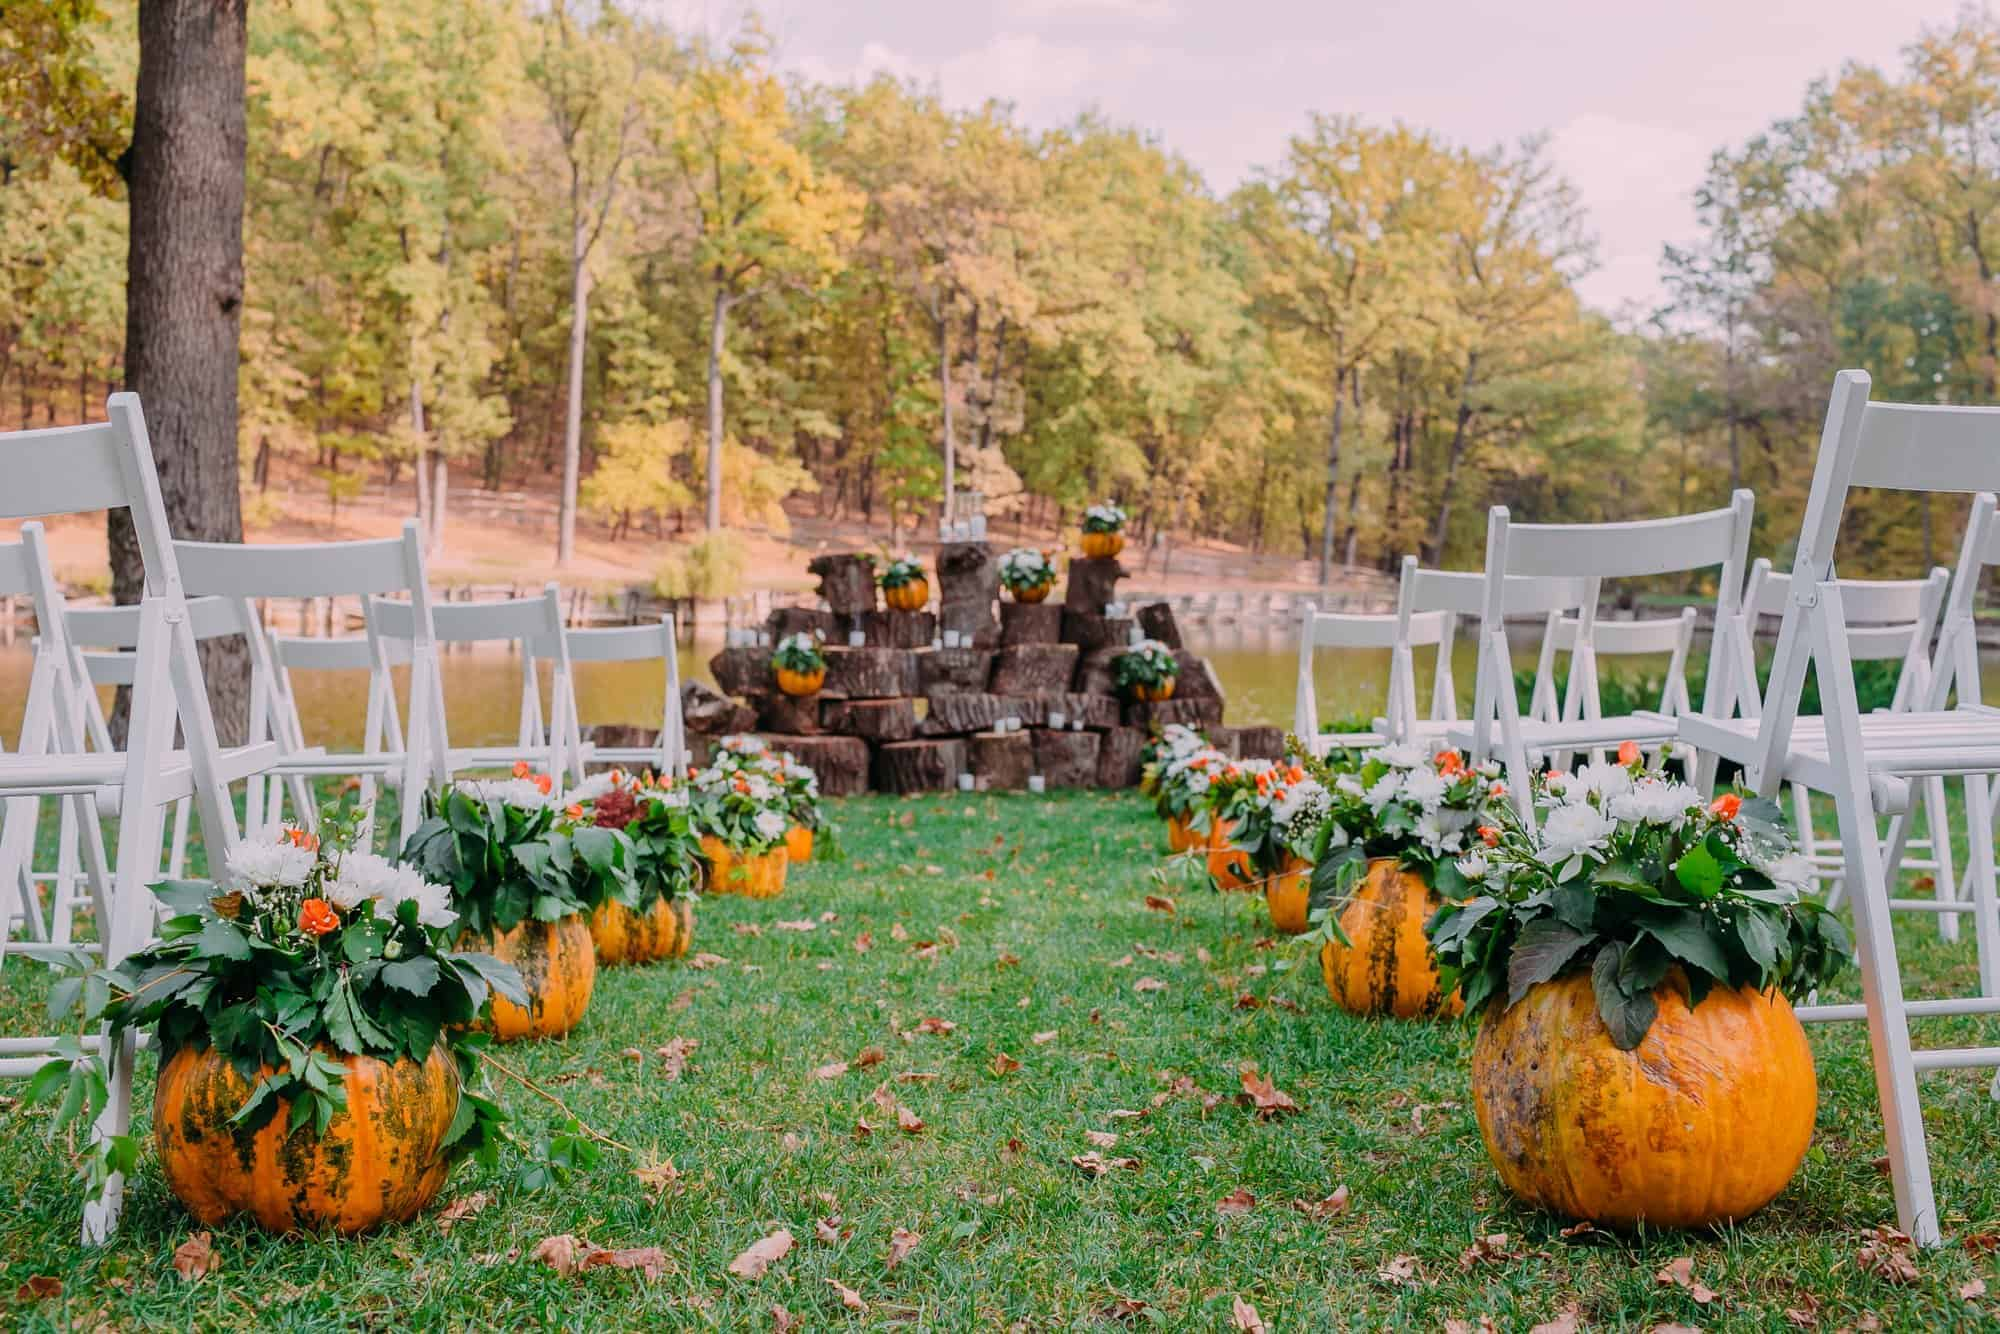 A fall wedding with white folding chairs set up outside with pumpkins at the end of every aisle.